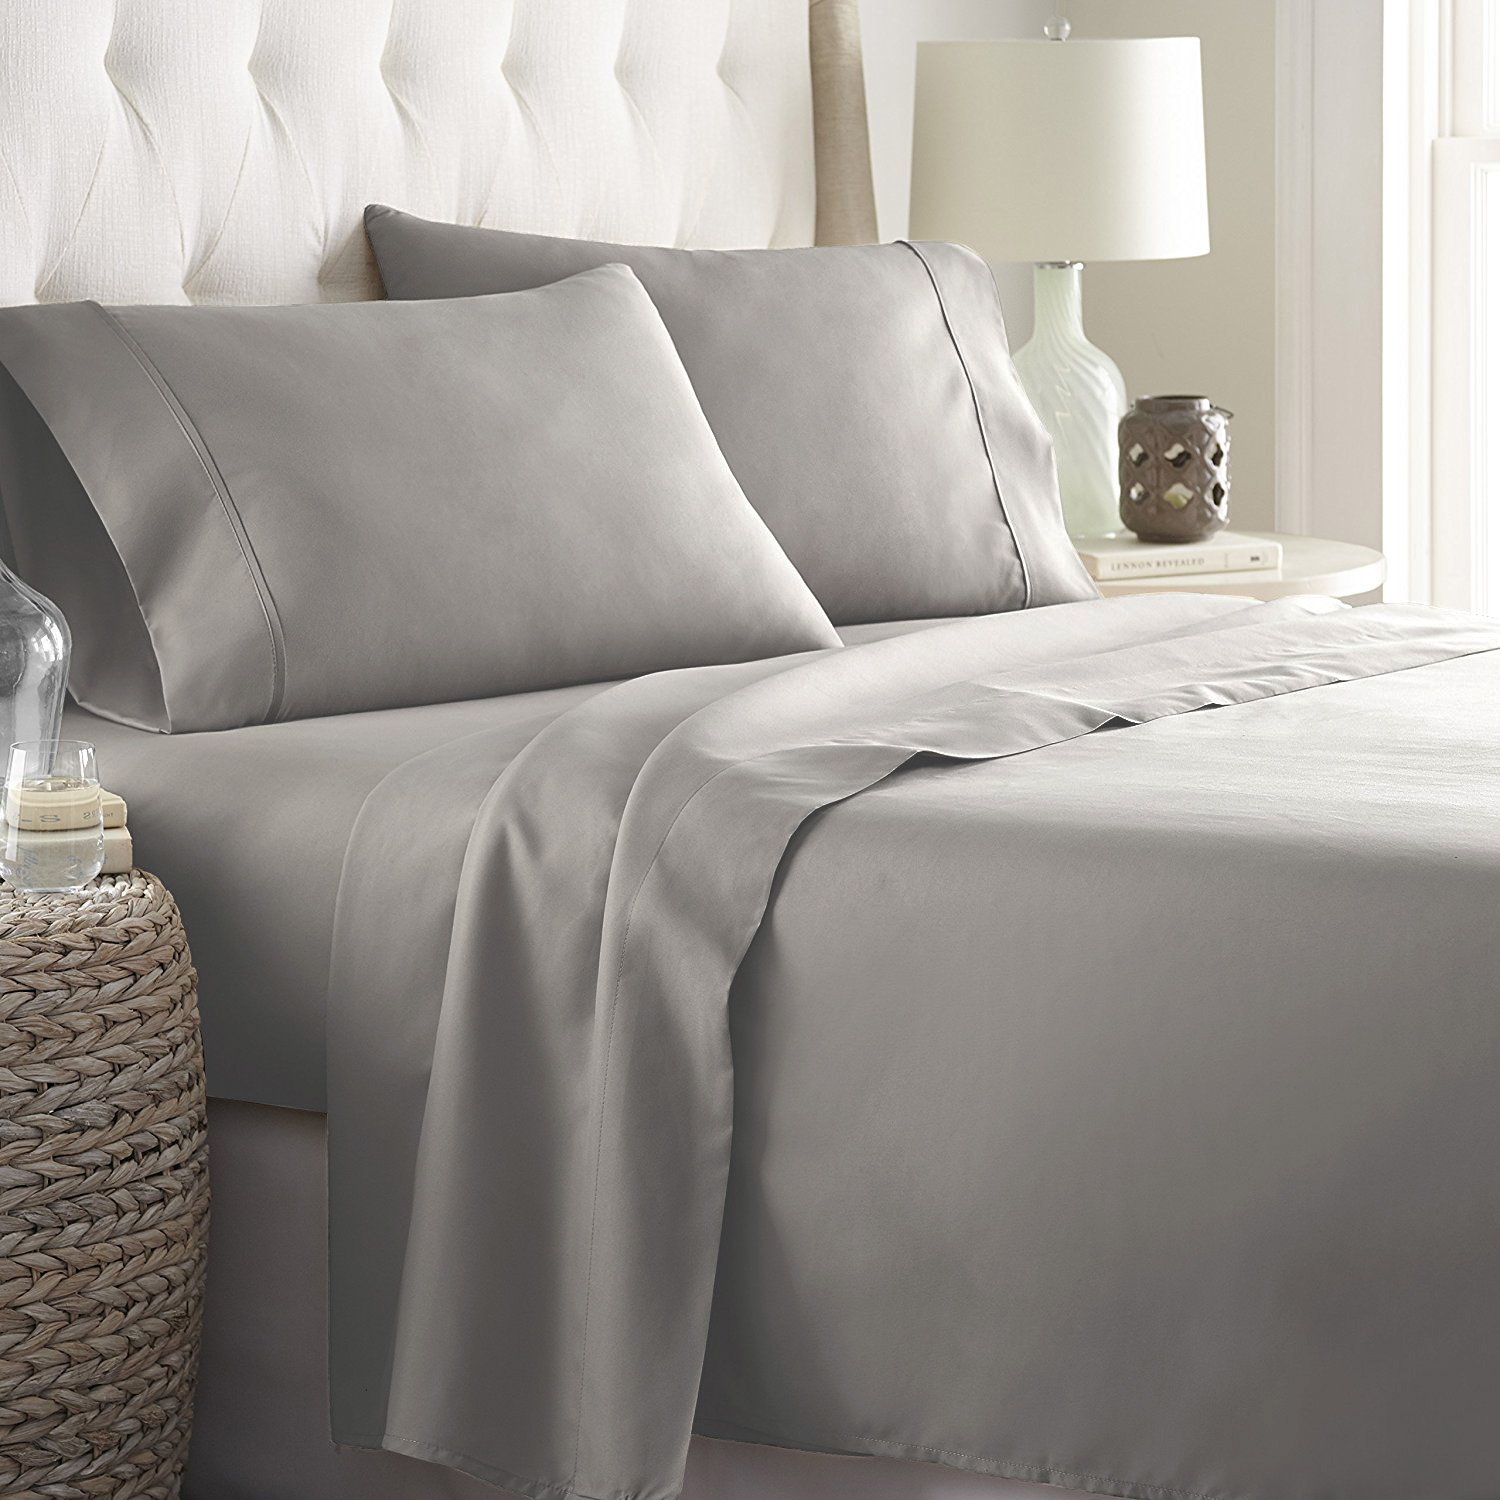 100/% Cotton 300 Thread Count Elegance and Durability Light Gray Sateen Sheet Set